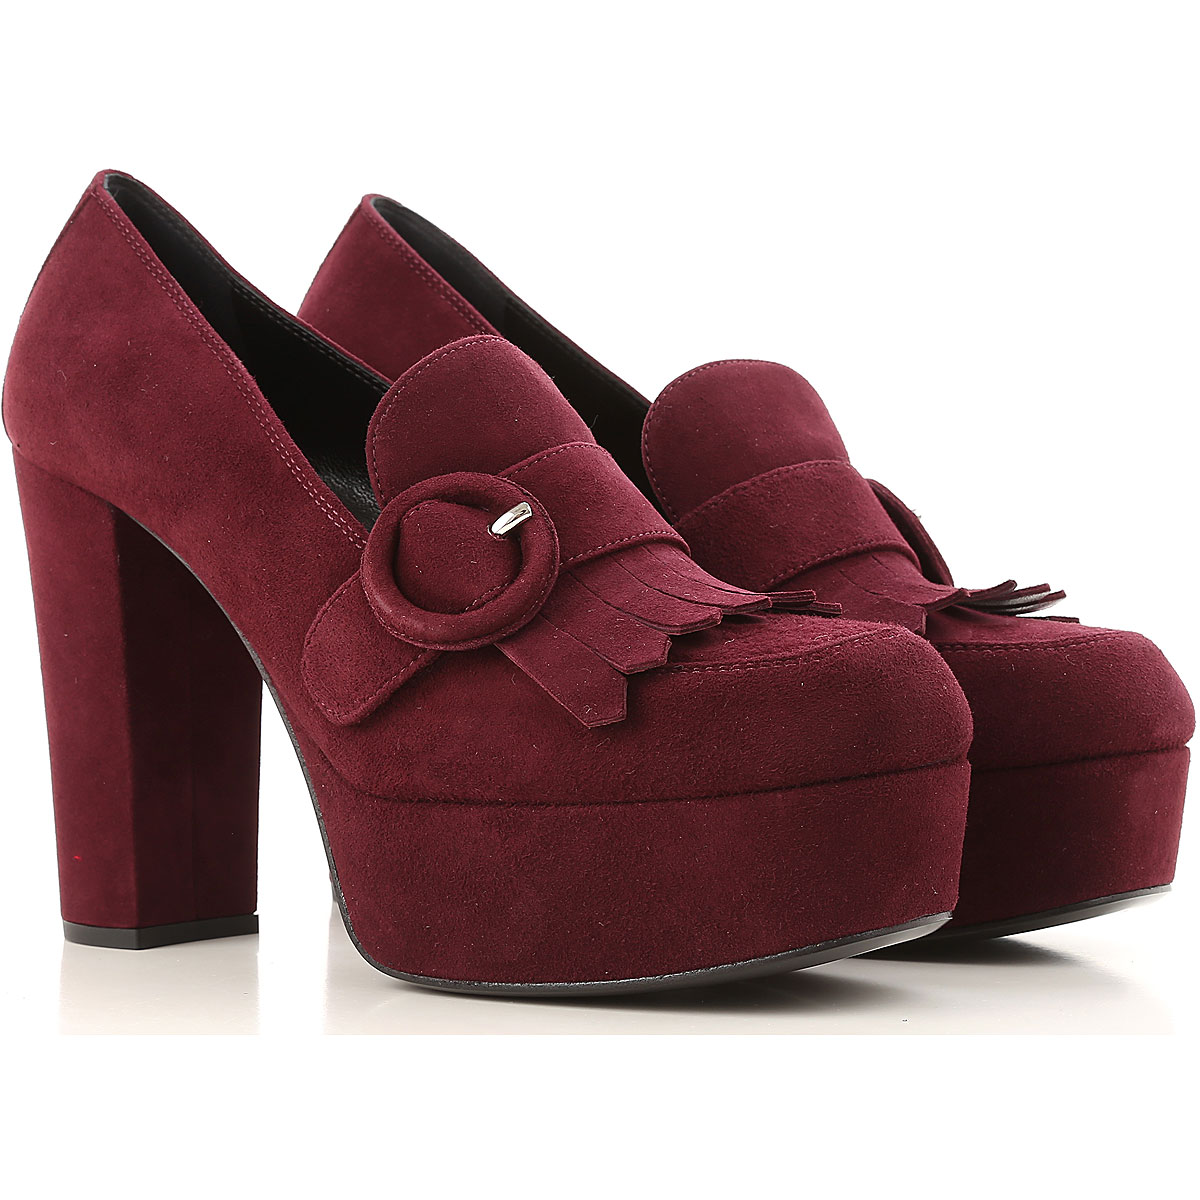 prada pumps & high heels for women on sale in outlet, garnet, suede leather, 2019, 3.5 5 5.5